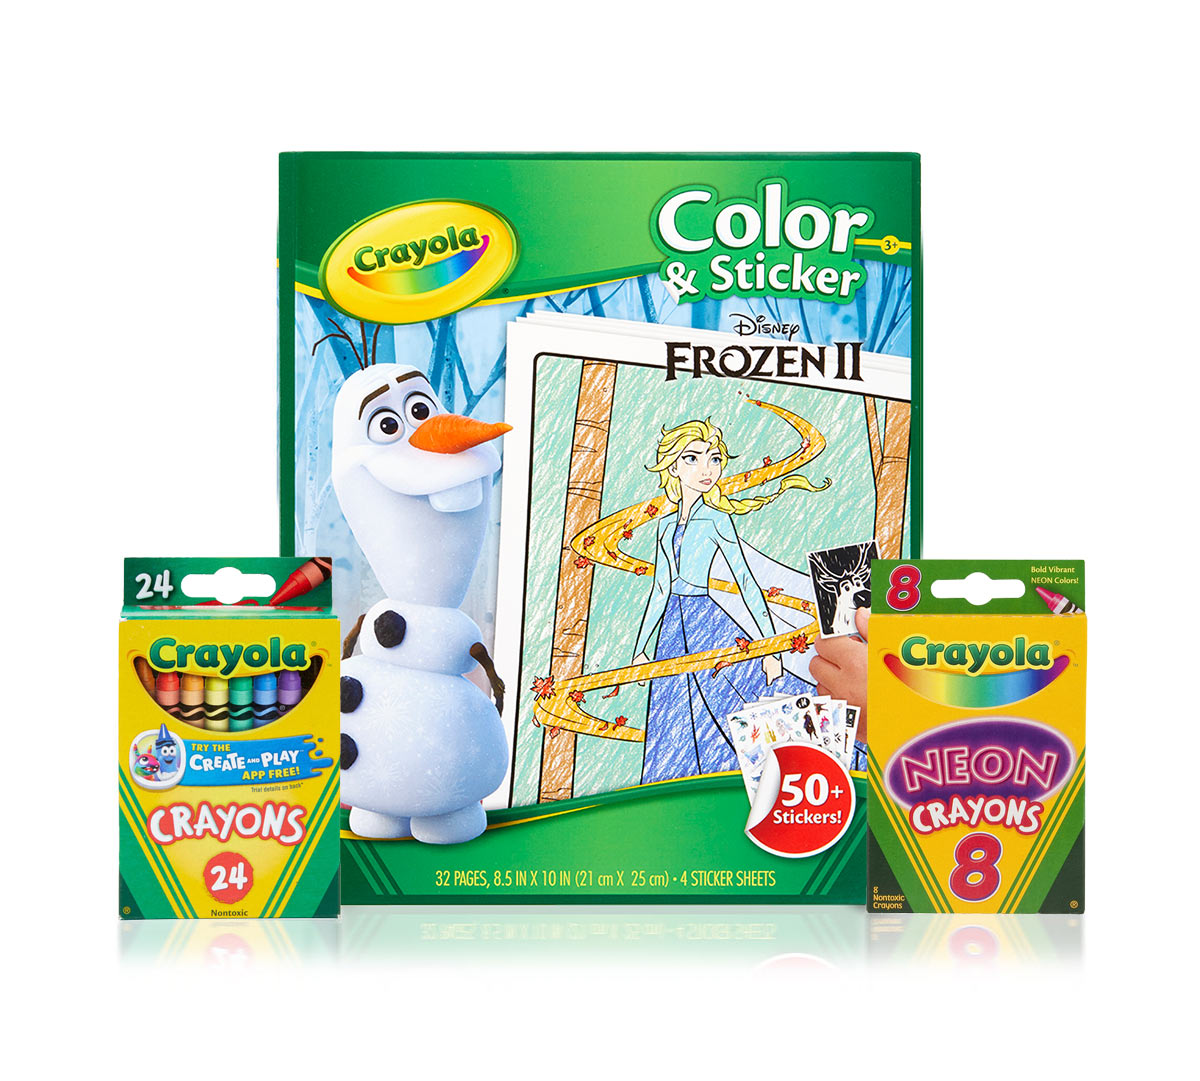 Frozen 2 Color & Sticker Book with Crayons